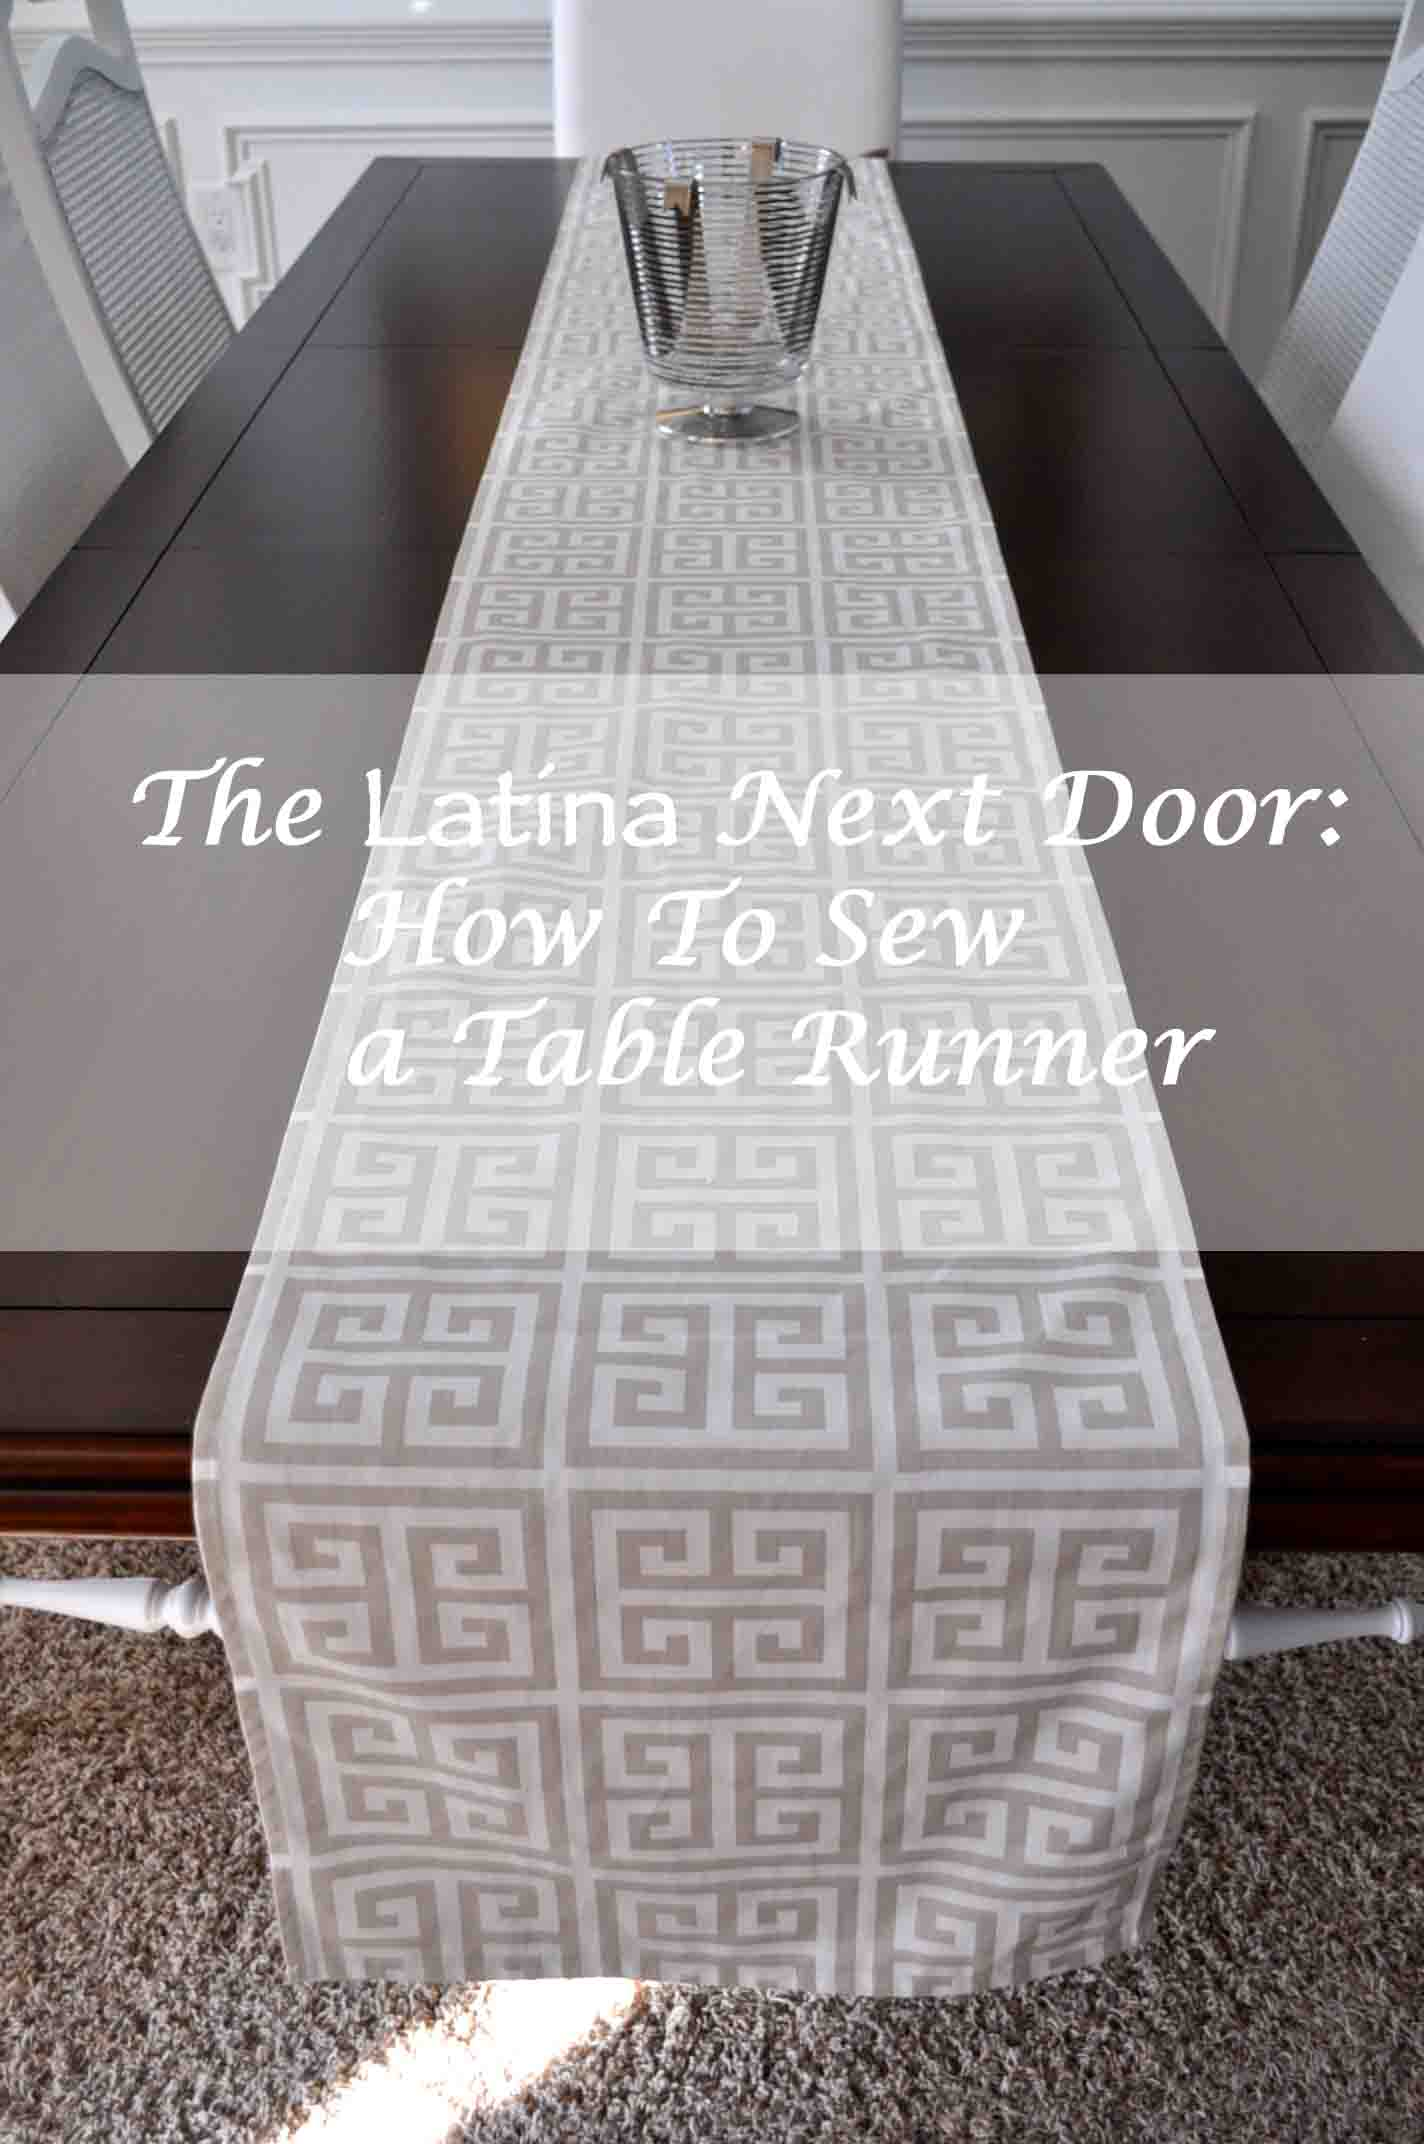 How to sew a table runner - How To Sew A Table Runner How To Sew A Table Runner